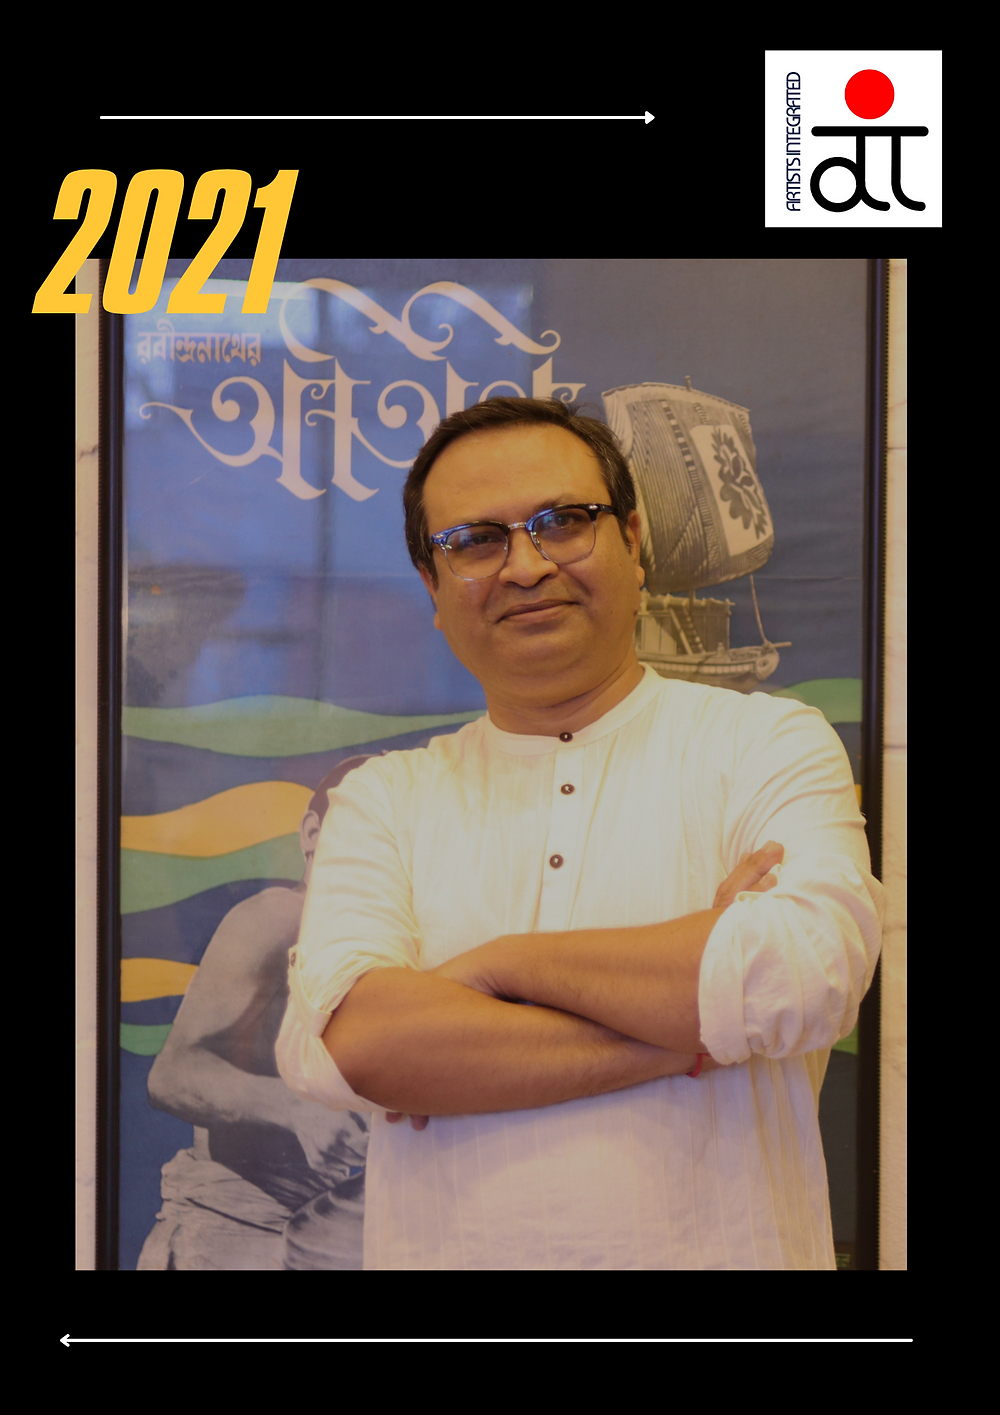 Shubhankar Mazumdar, Founder Director, and CEO, Artists Integrated Business Private Limited